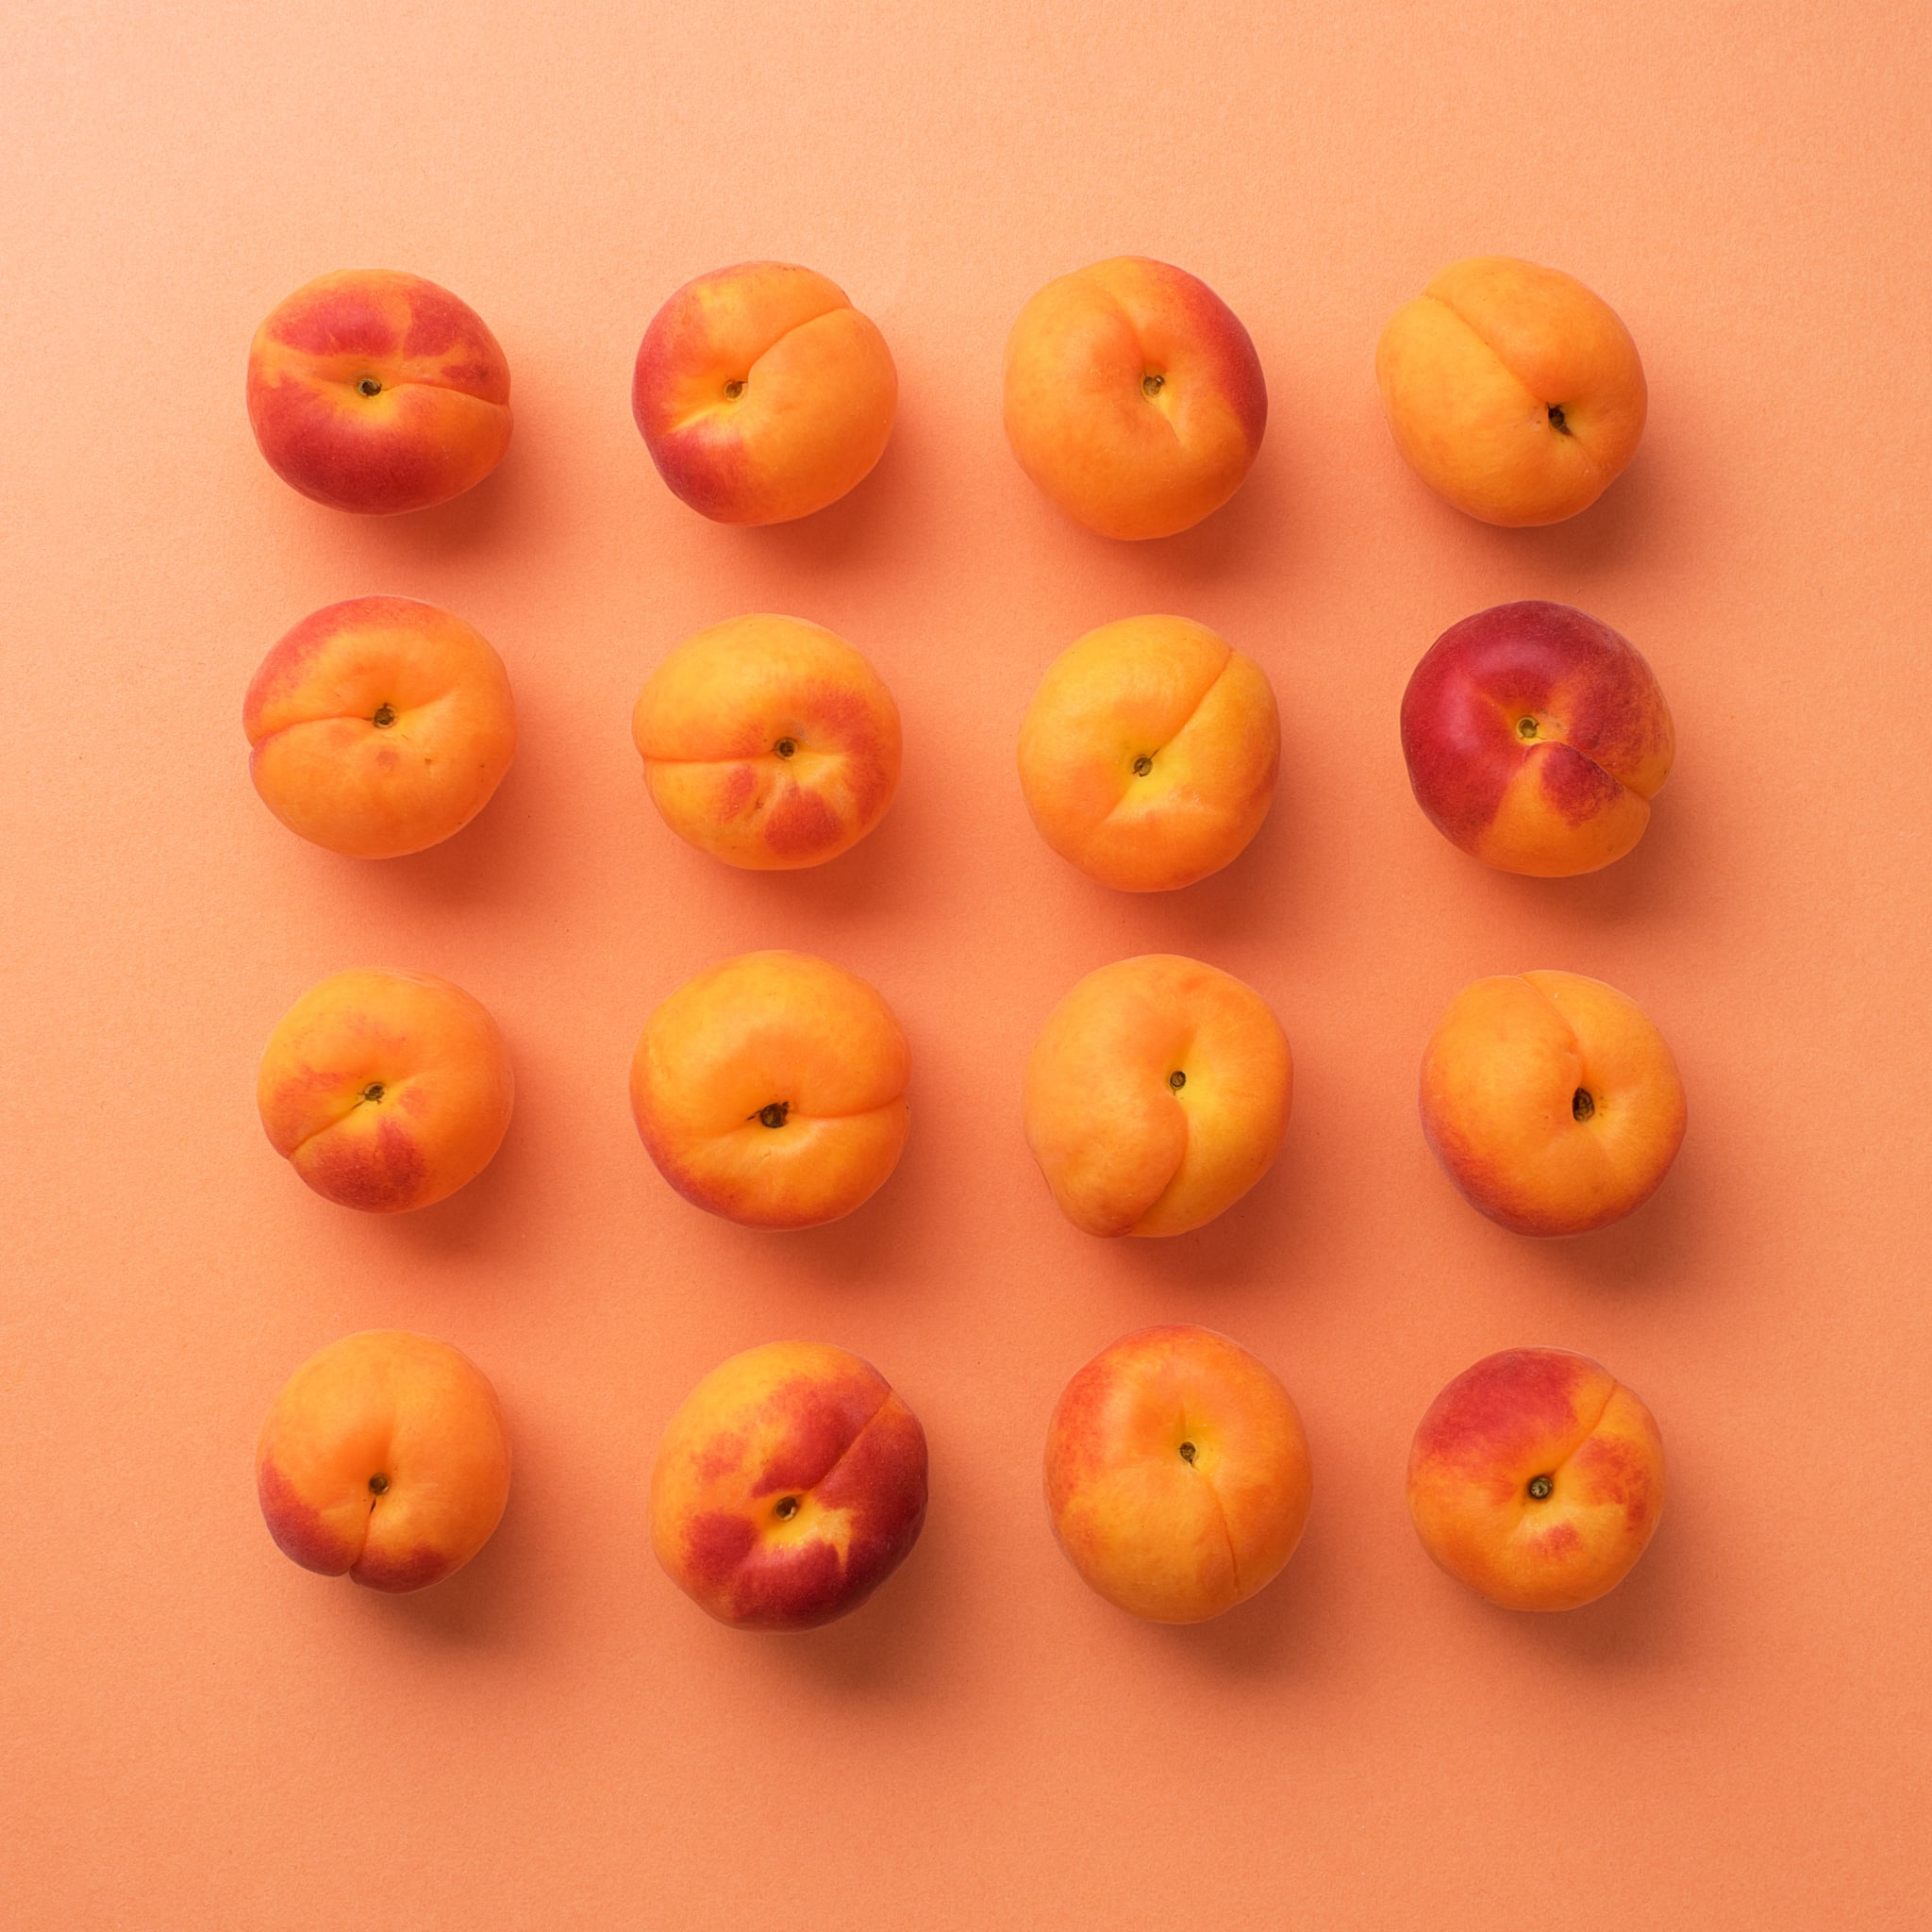 Apricots organized in a square over orange background